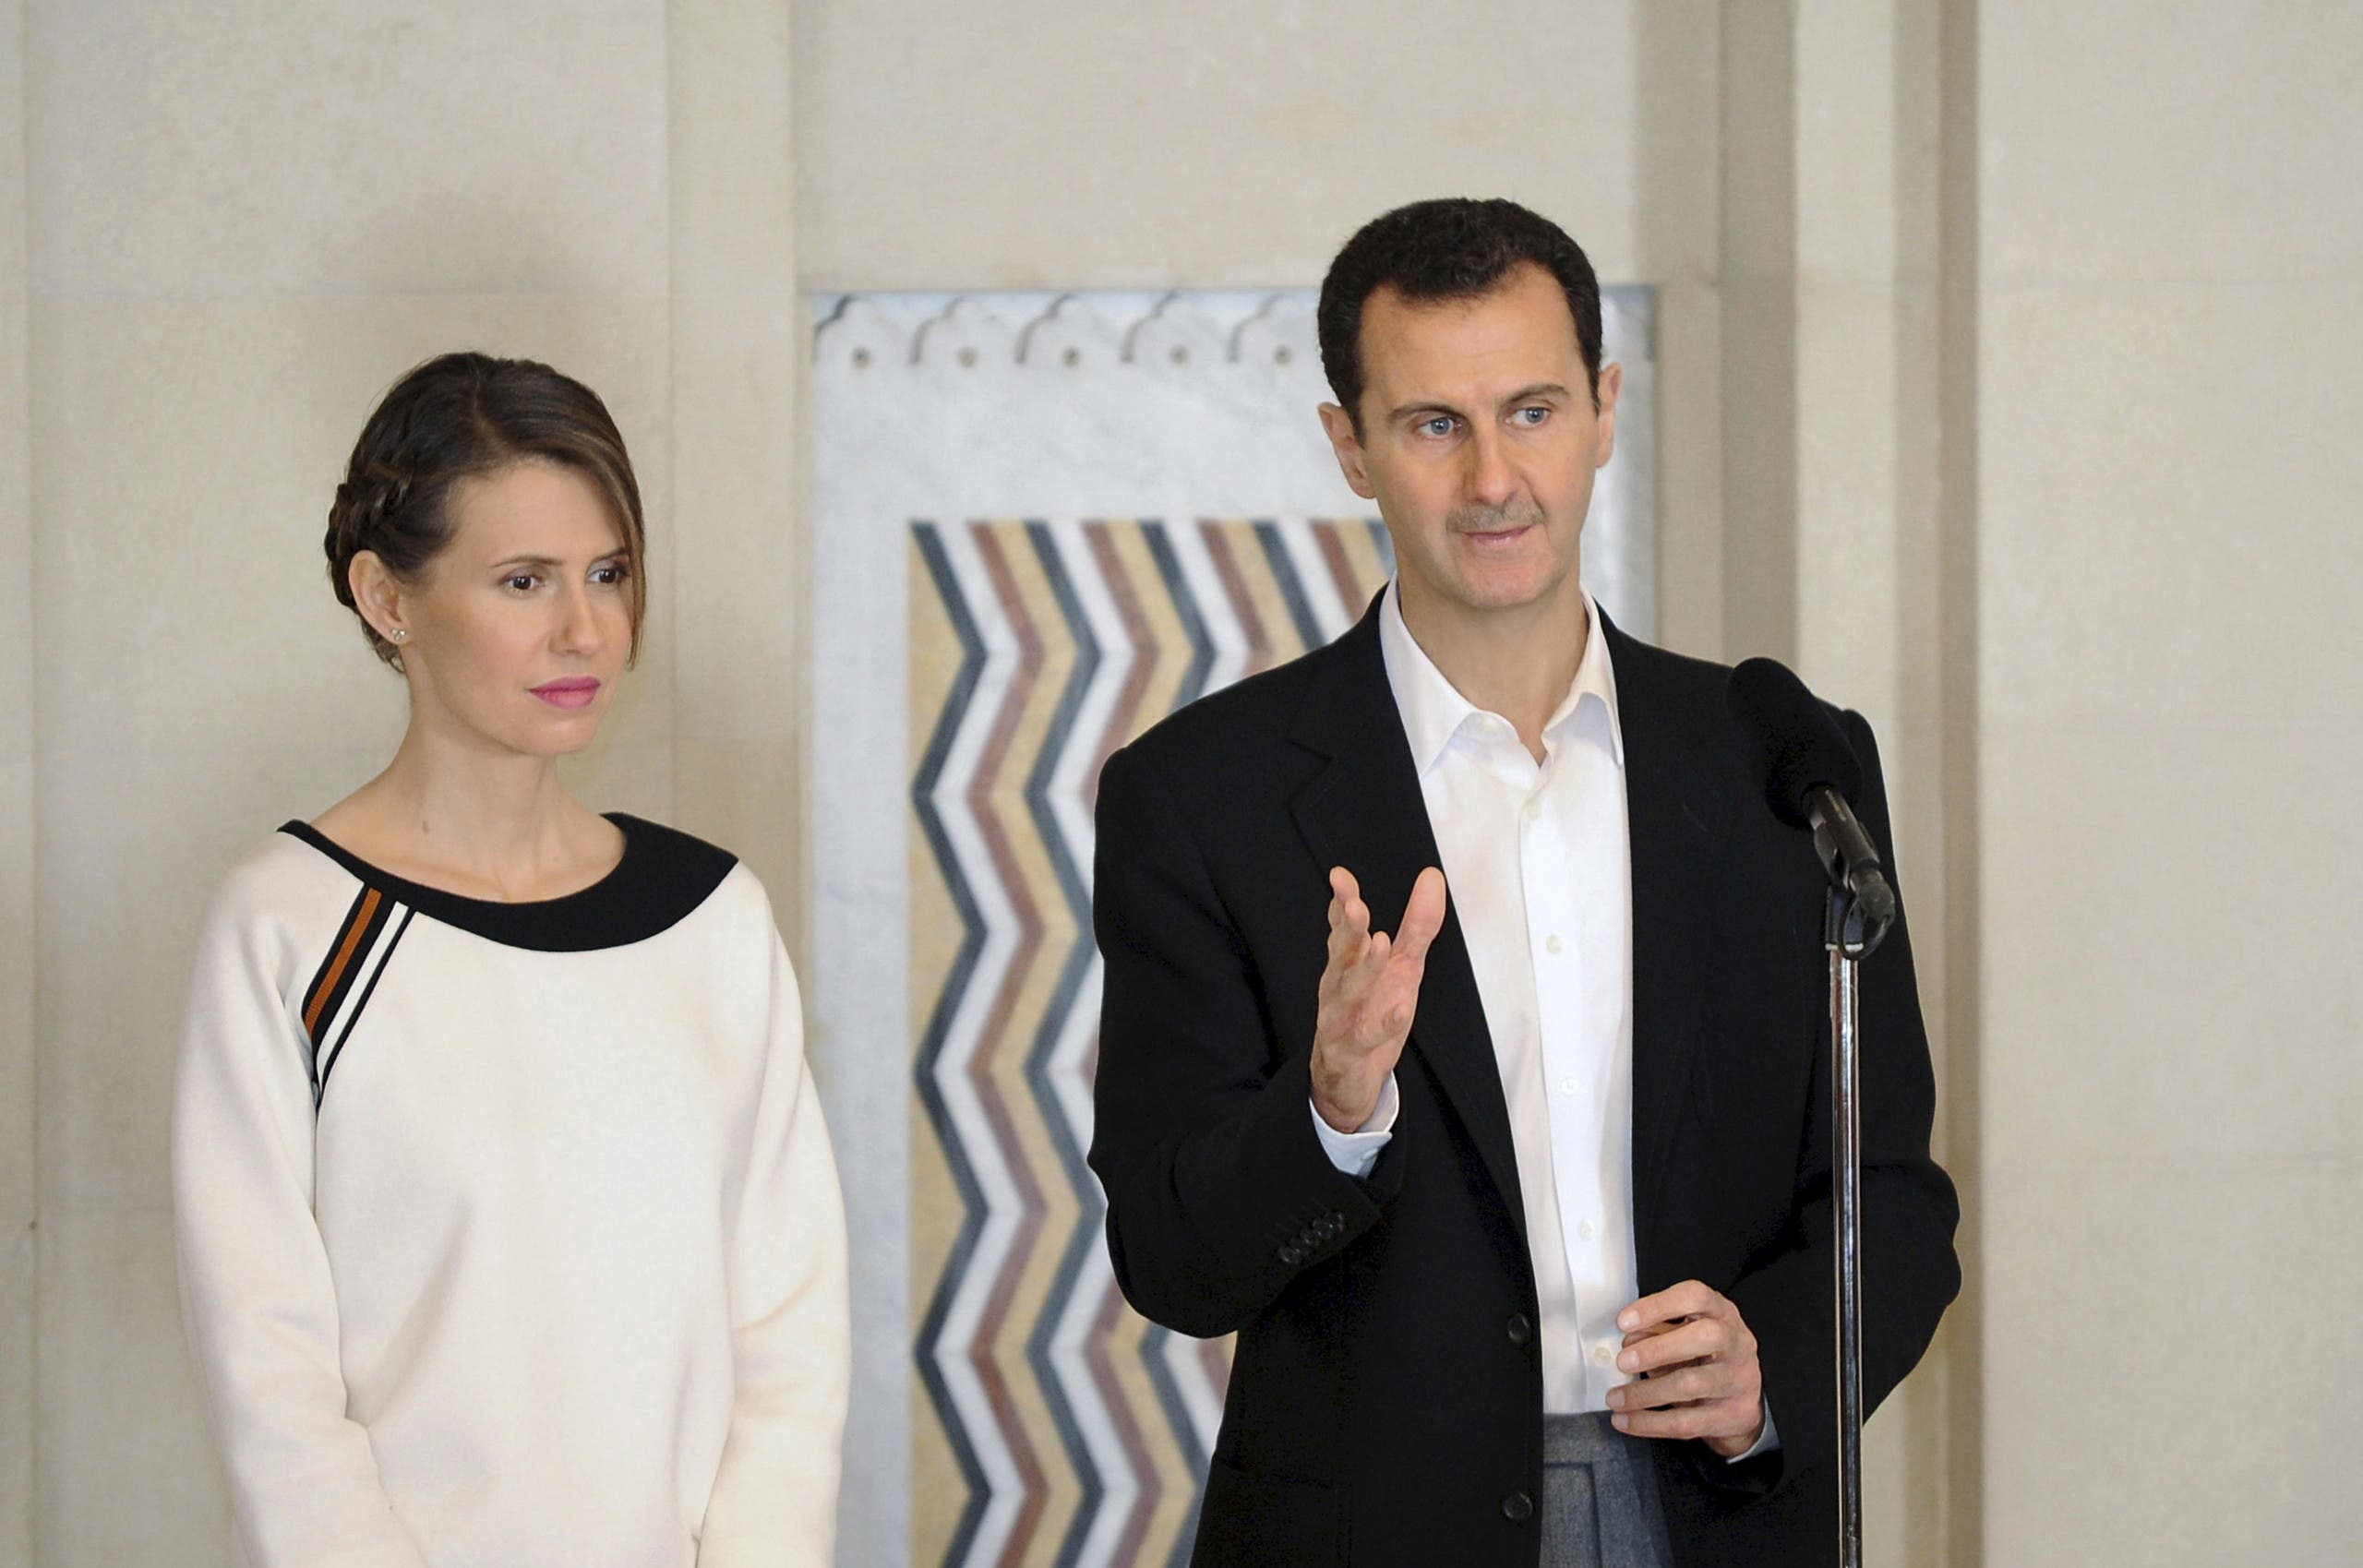 Syria's President Bashar al-Assad stands next to his wife Asma, as he addresses injured soldiers and their mothers during a celebration marking Syrian Mother's Day in Damascus, in this handout picture provided by SANA on March 21, 2016. (Reuters)